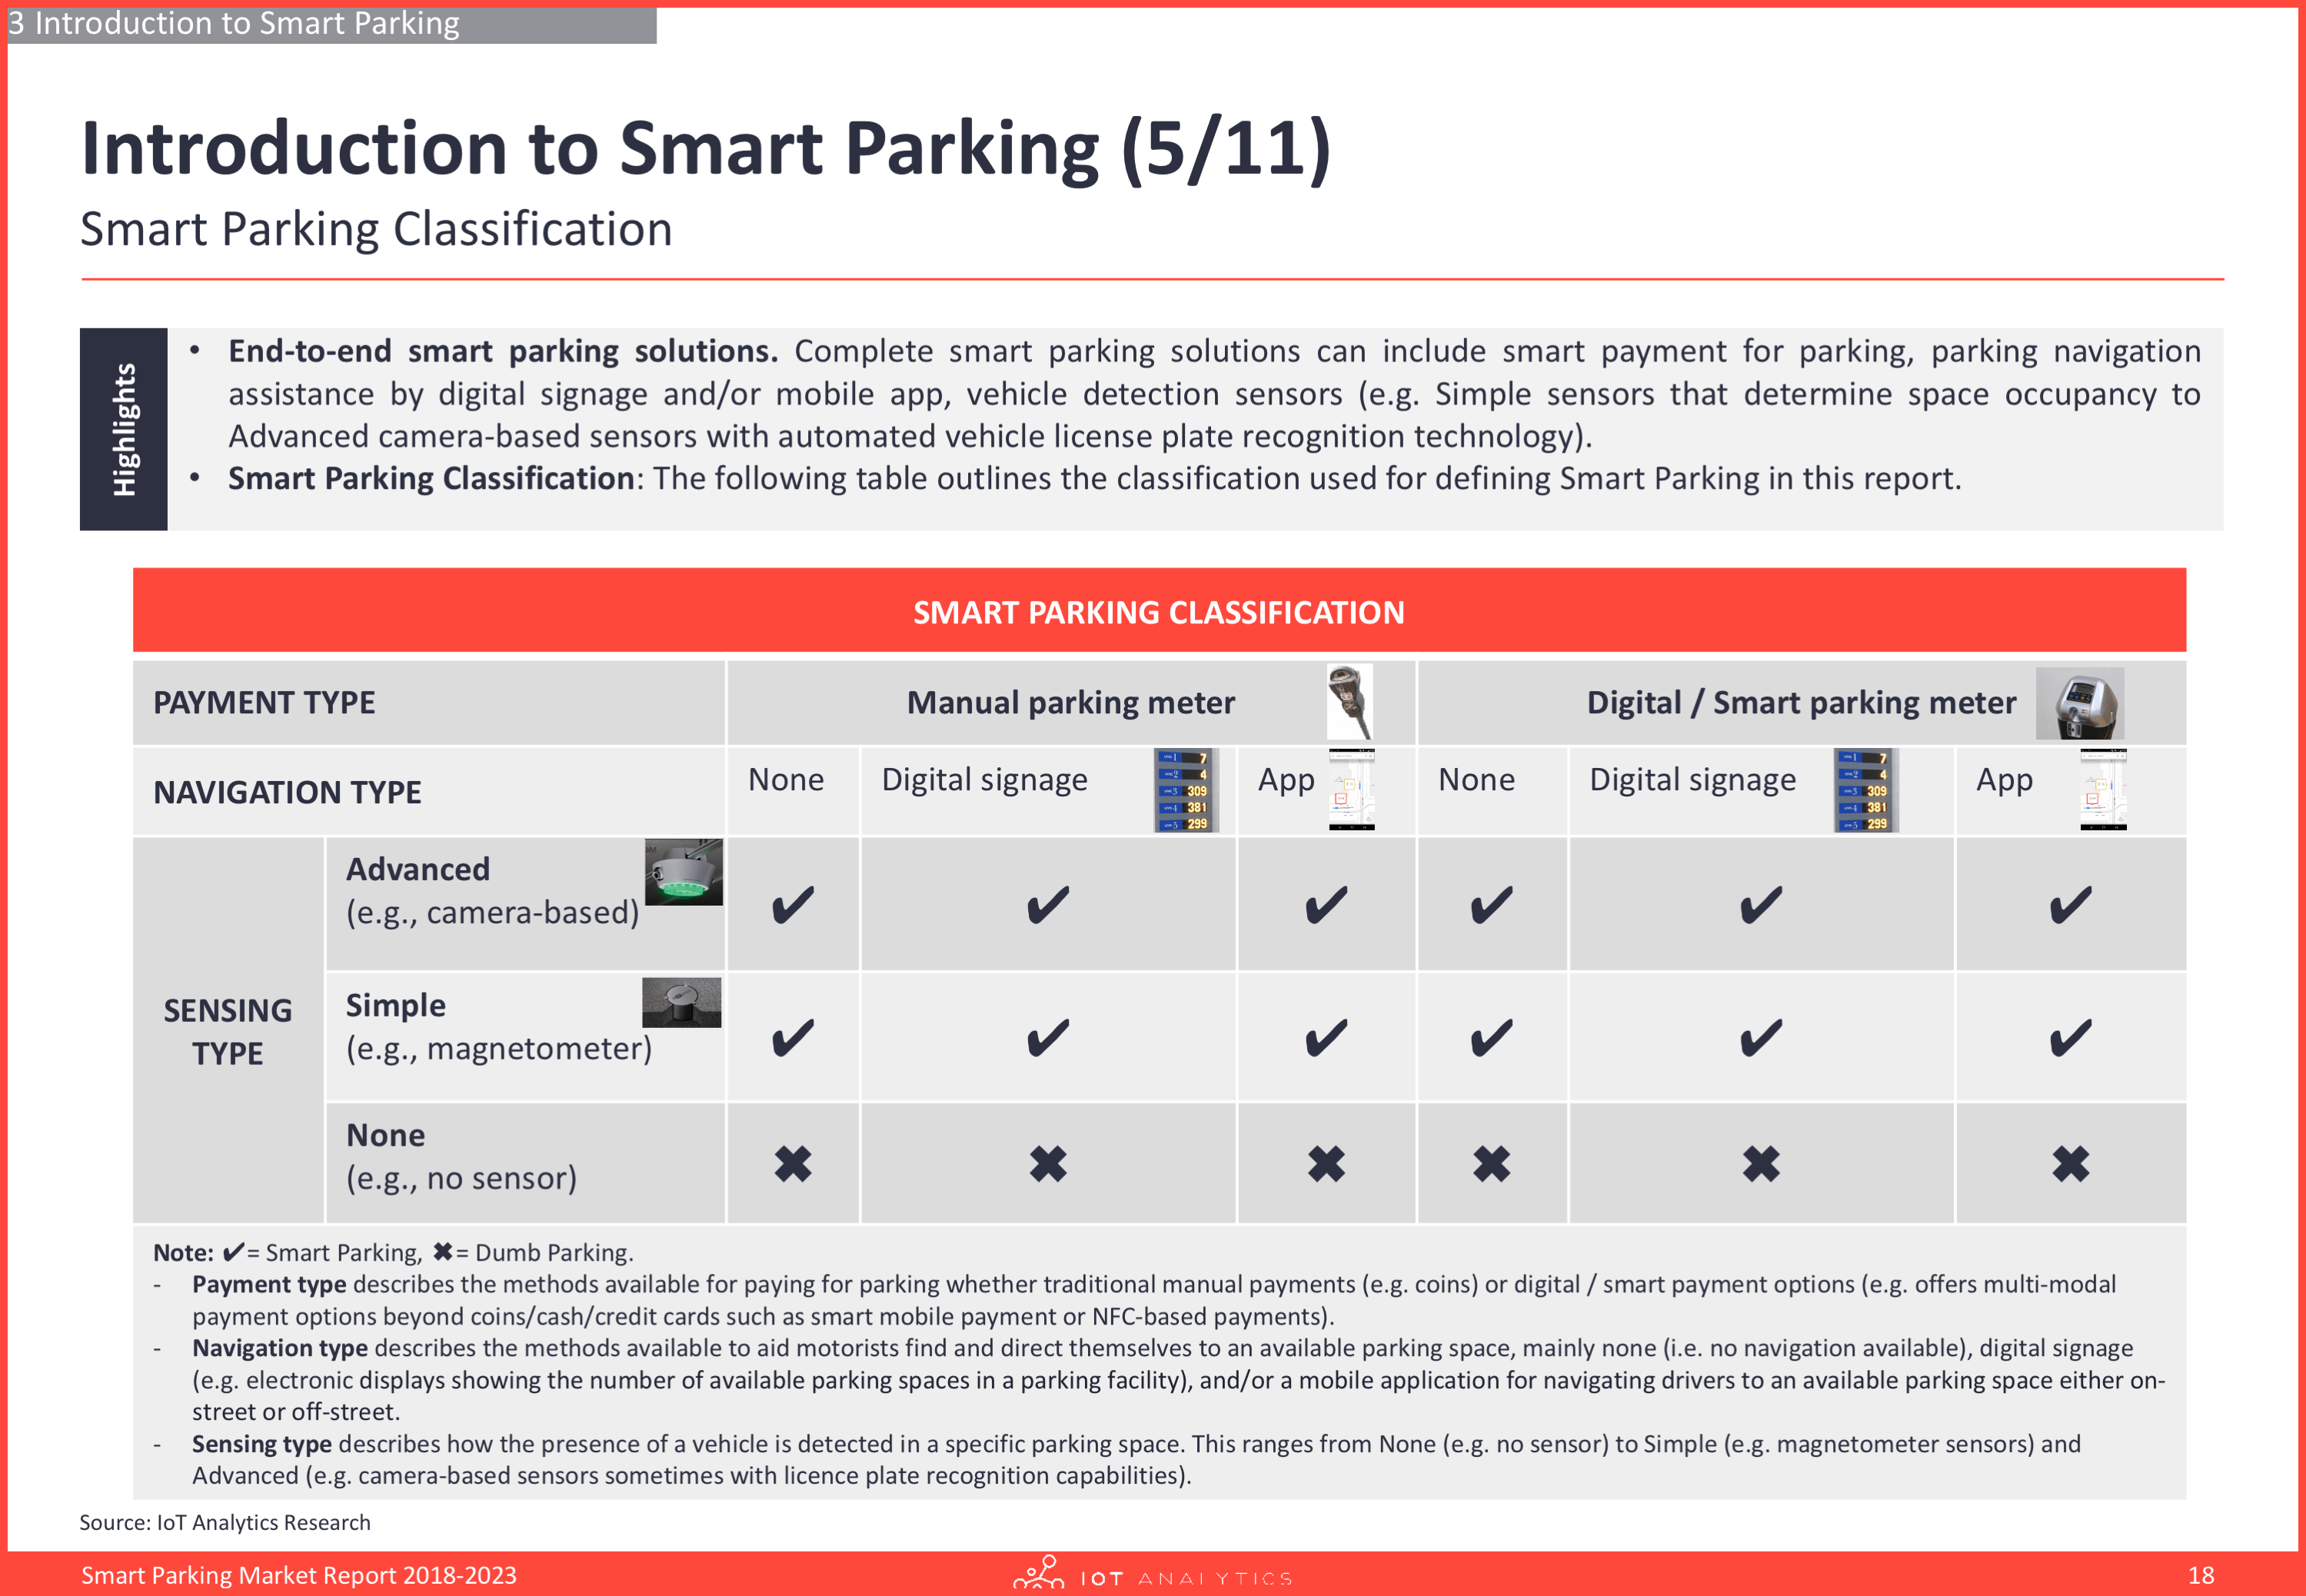 Smart parking market report - Introduction to smart parking